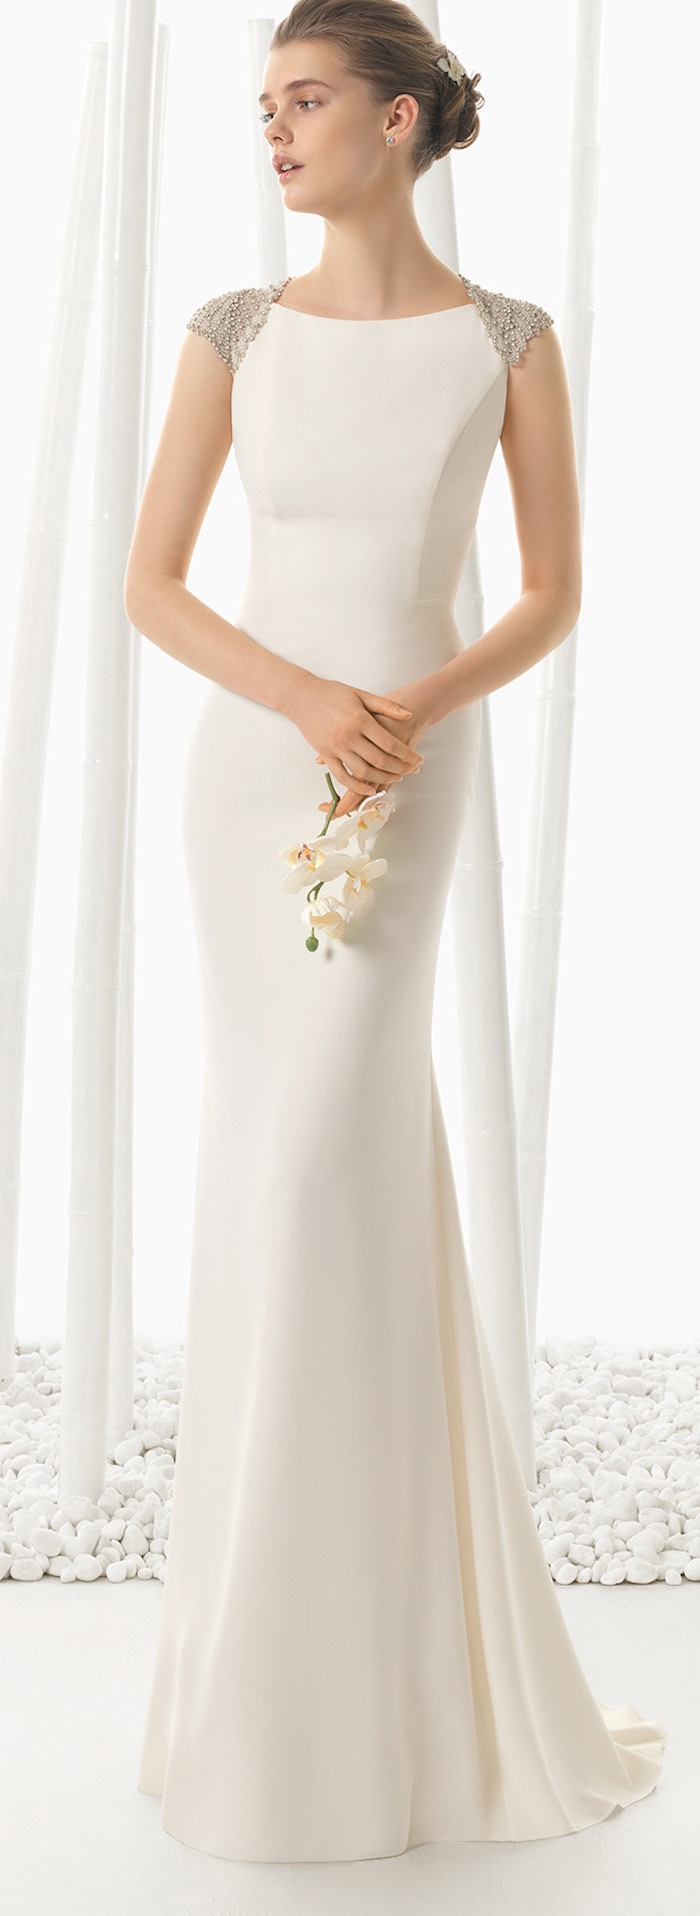 modest-wedding-dresses-2-08292015-km